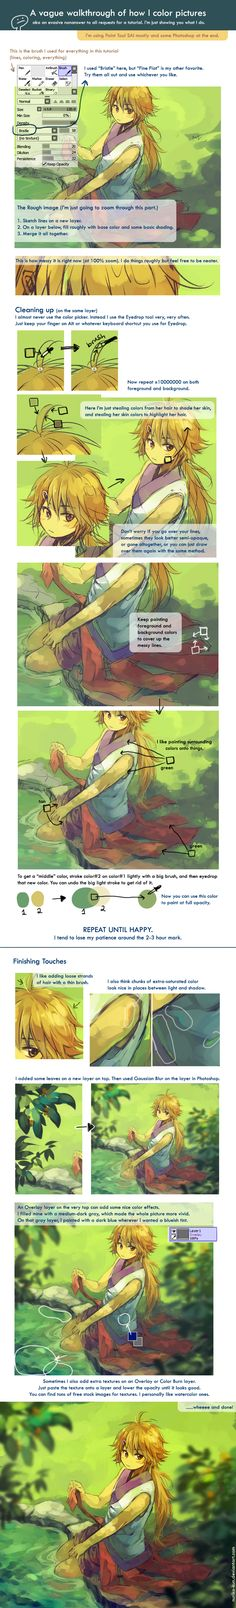 Nuriko's coloring tutorials for Paint Tool SAI. I love the coloring style!